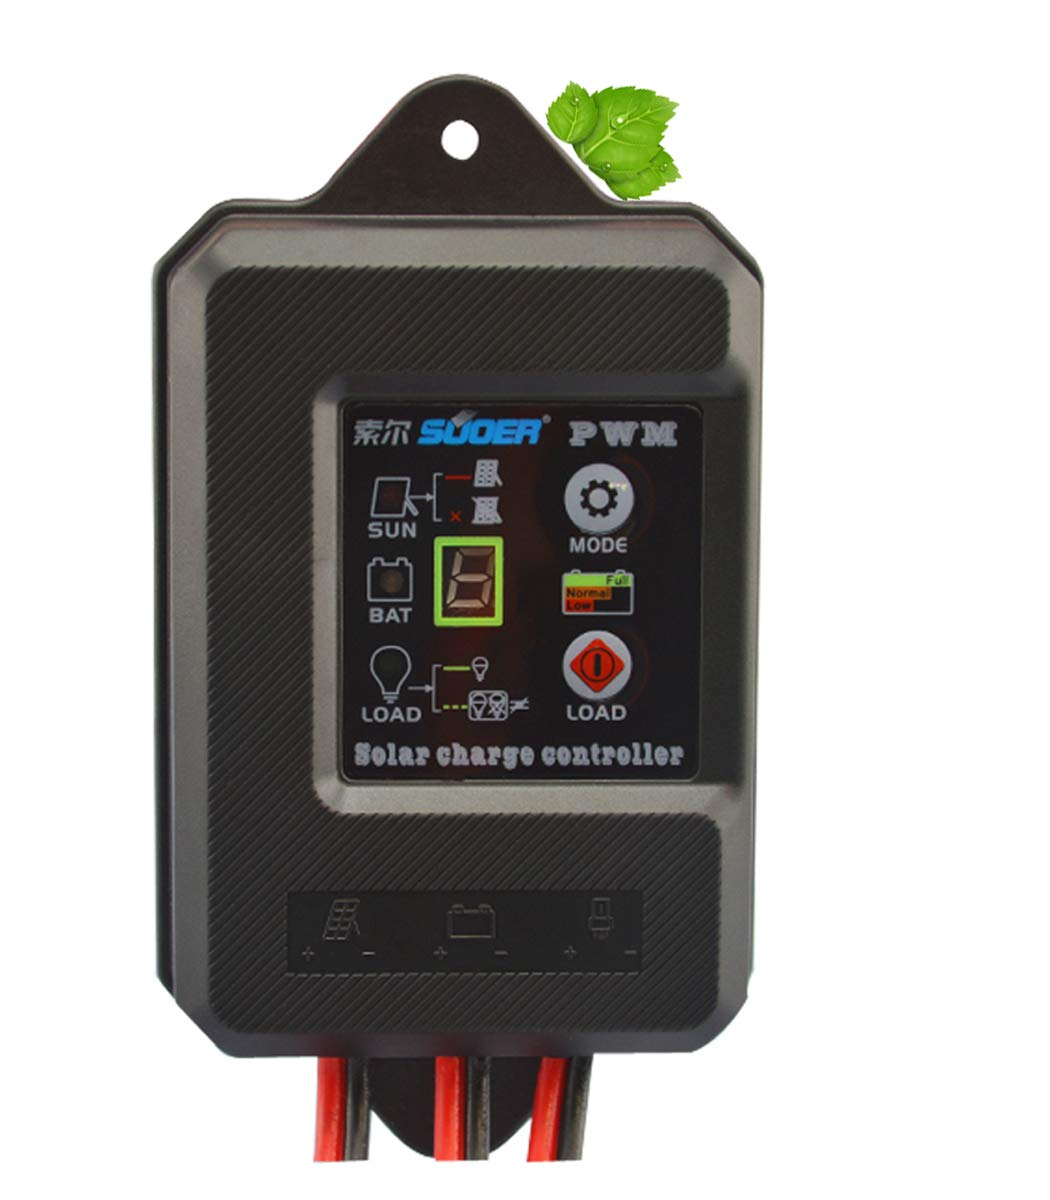 10A Waterproof Solar Charge Controller PWM Solar Panel Regulator for 12V/24V Solar Charging by CPTDCL (Image #1)